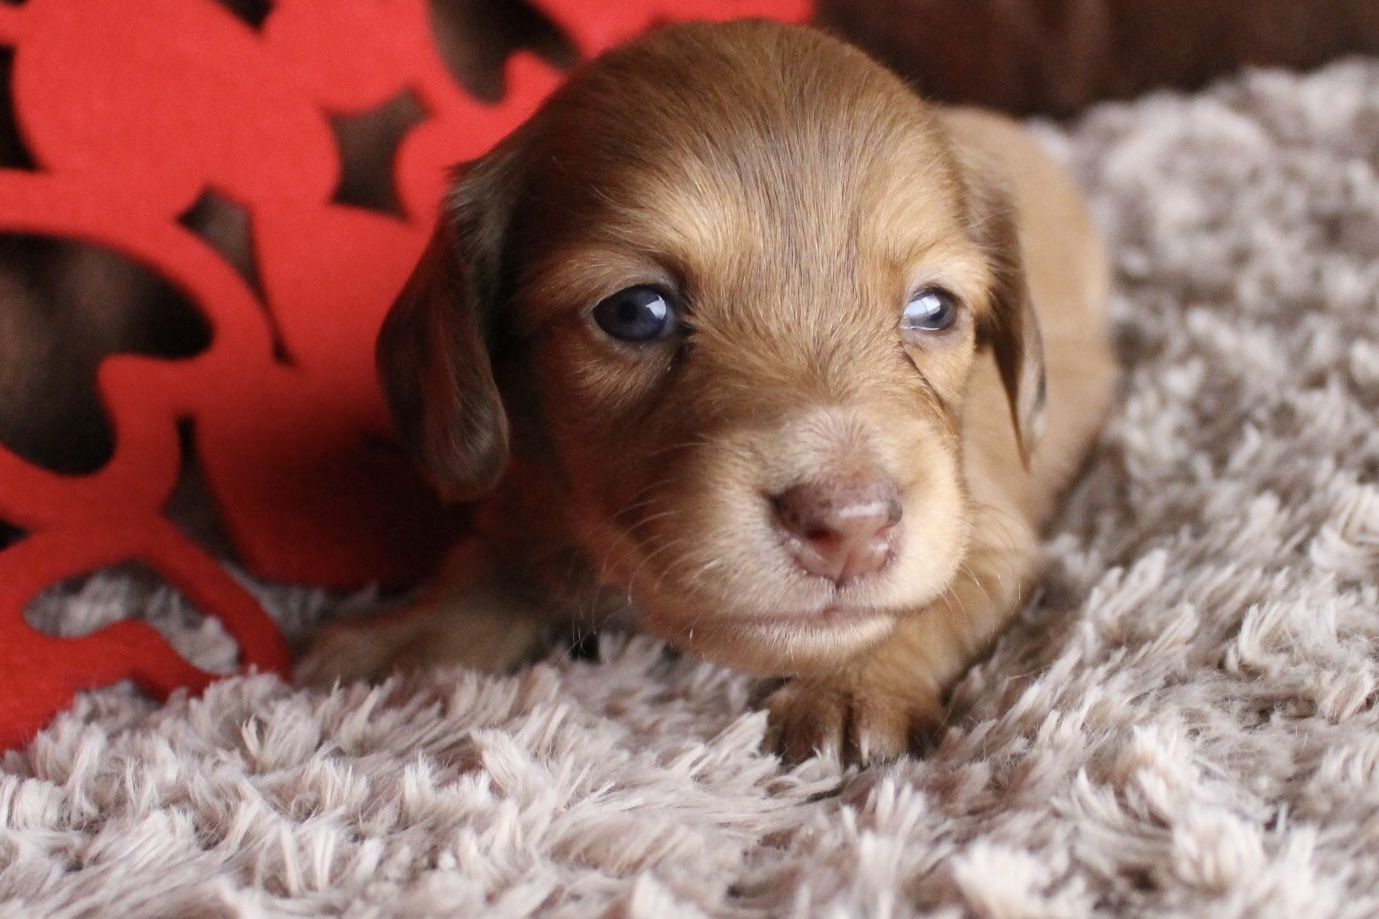 Chocolate And Cream Dapple Longhair Female Dachshund Muddy River Dachshunds Dachshund Puppy Miniature Dachshund Puppies For Sale Dachshund Puppies